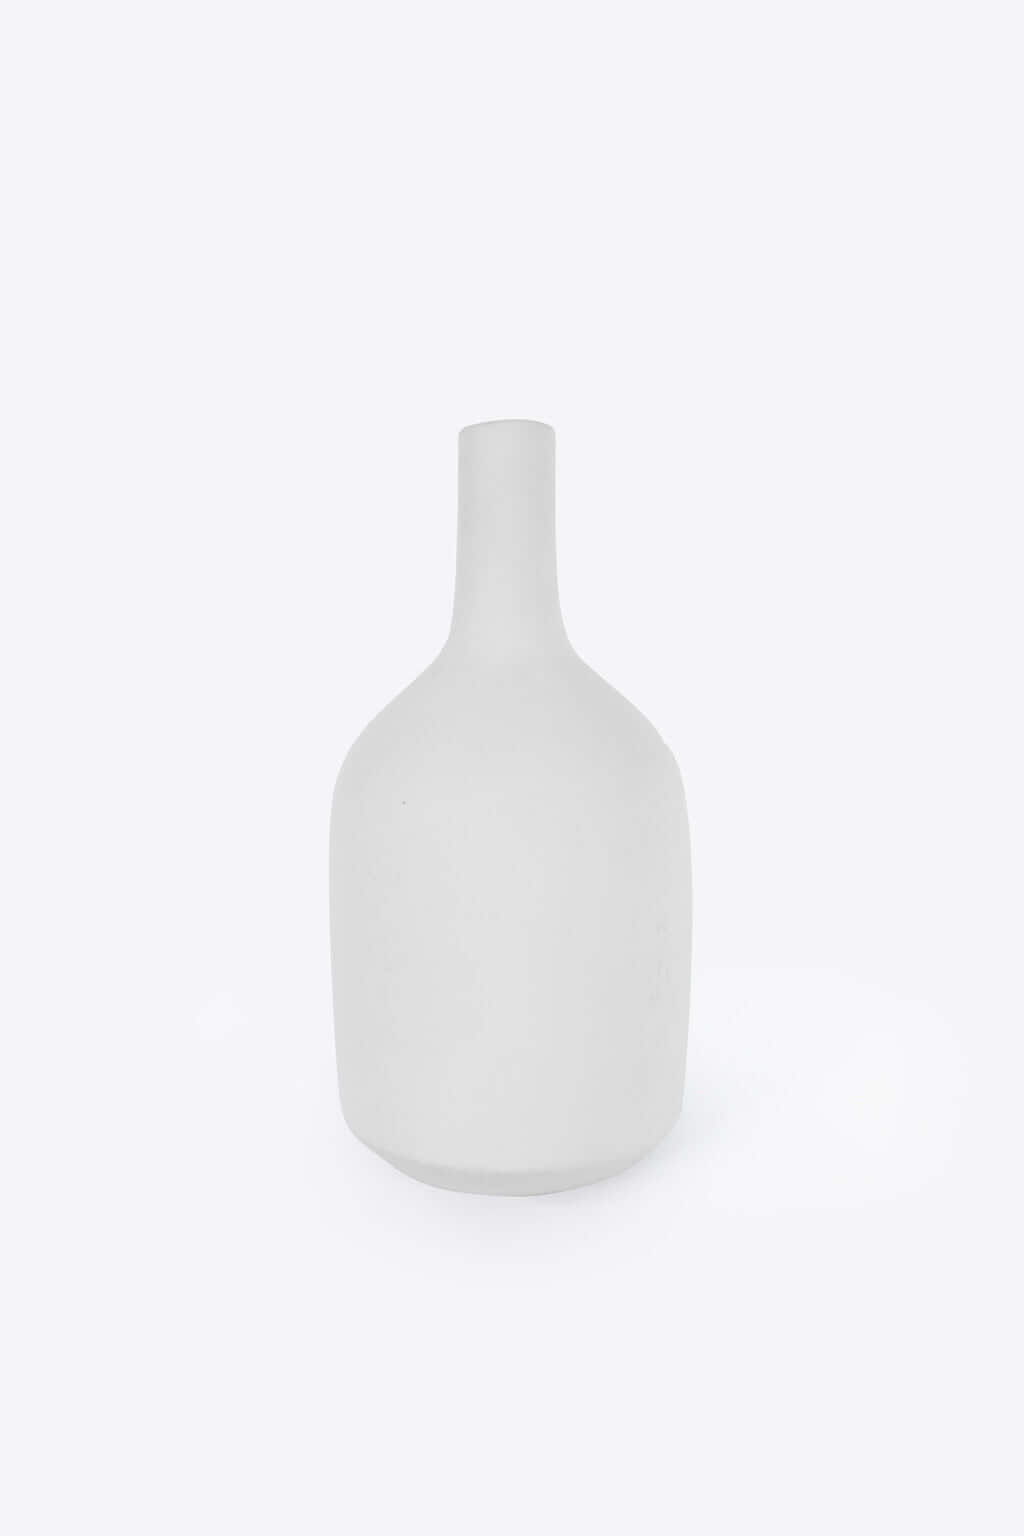 Bottle Vase 3130 White 2